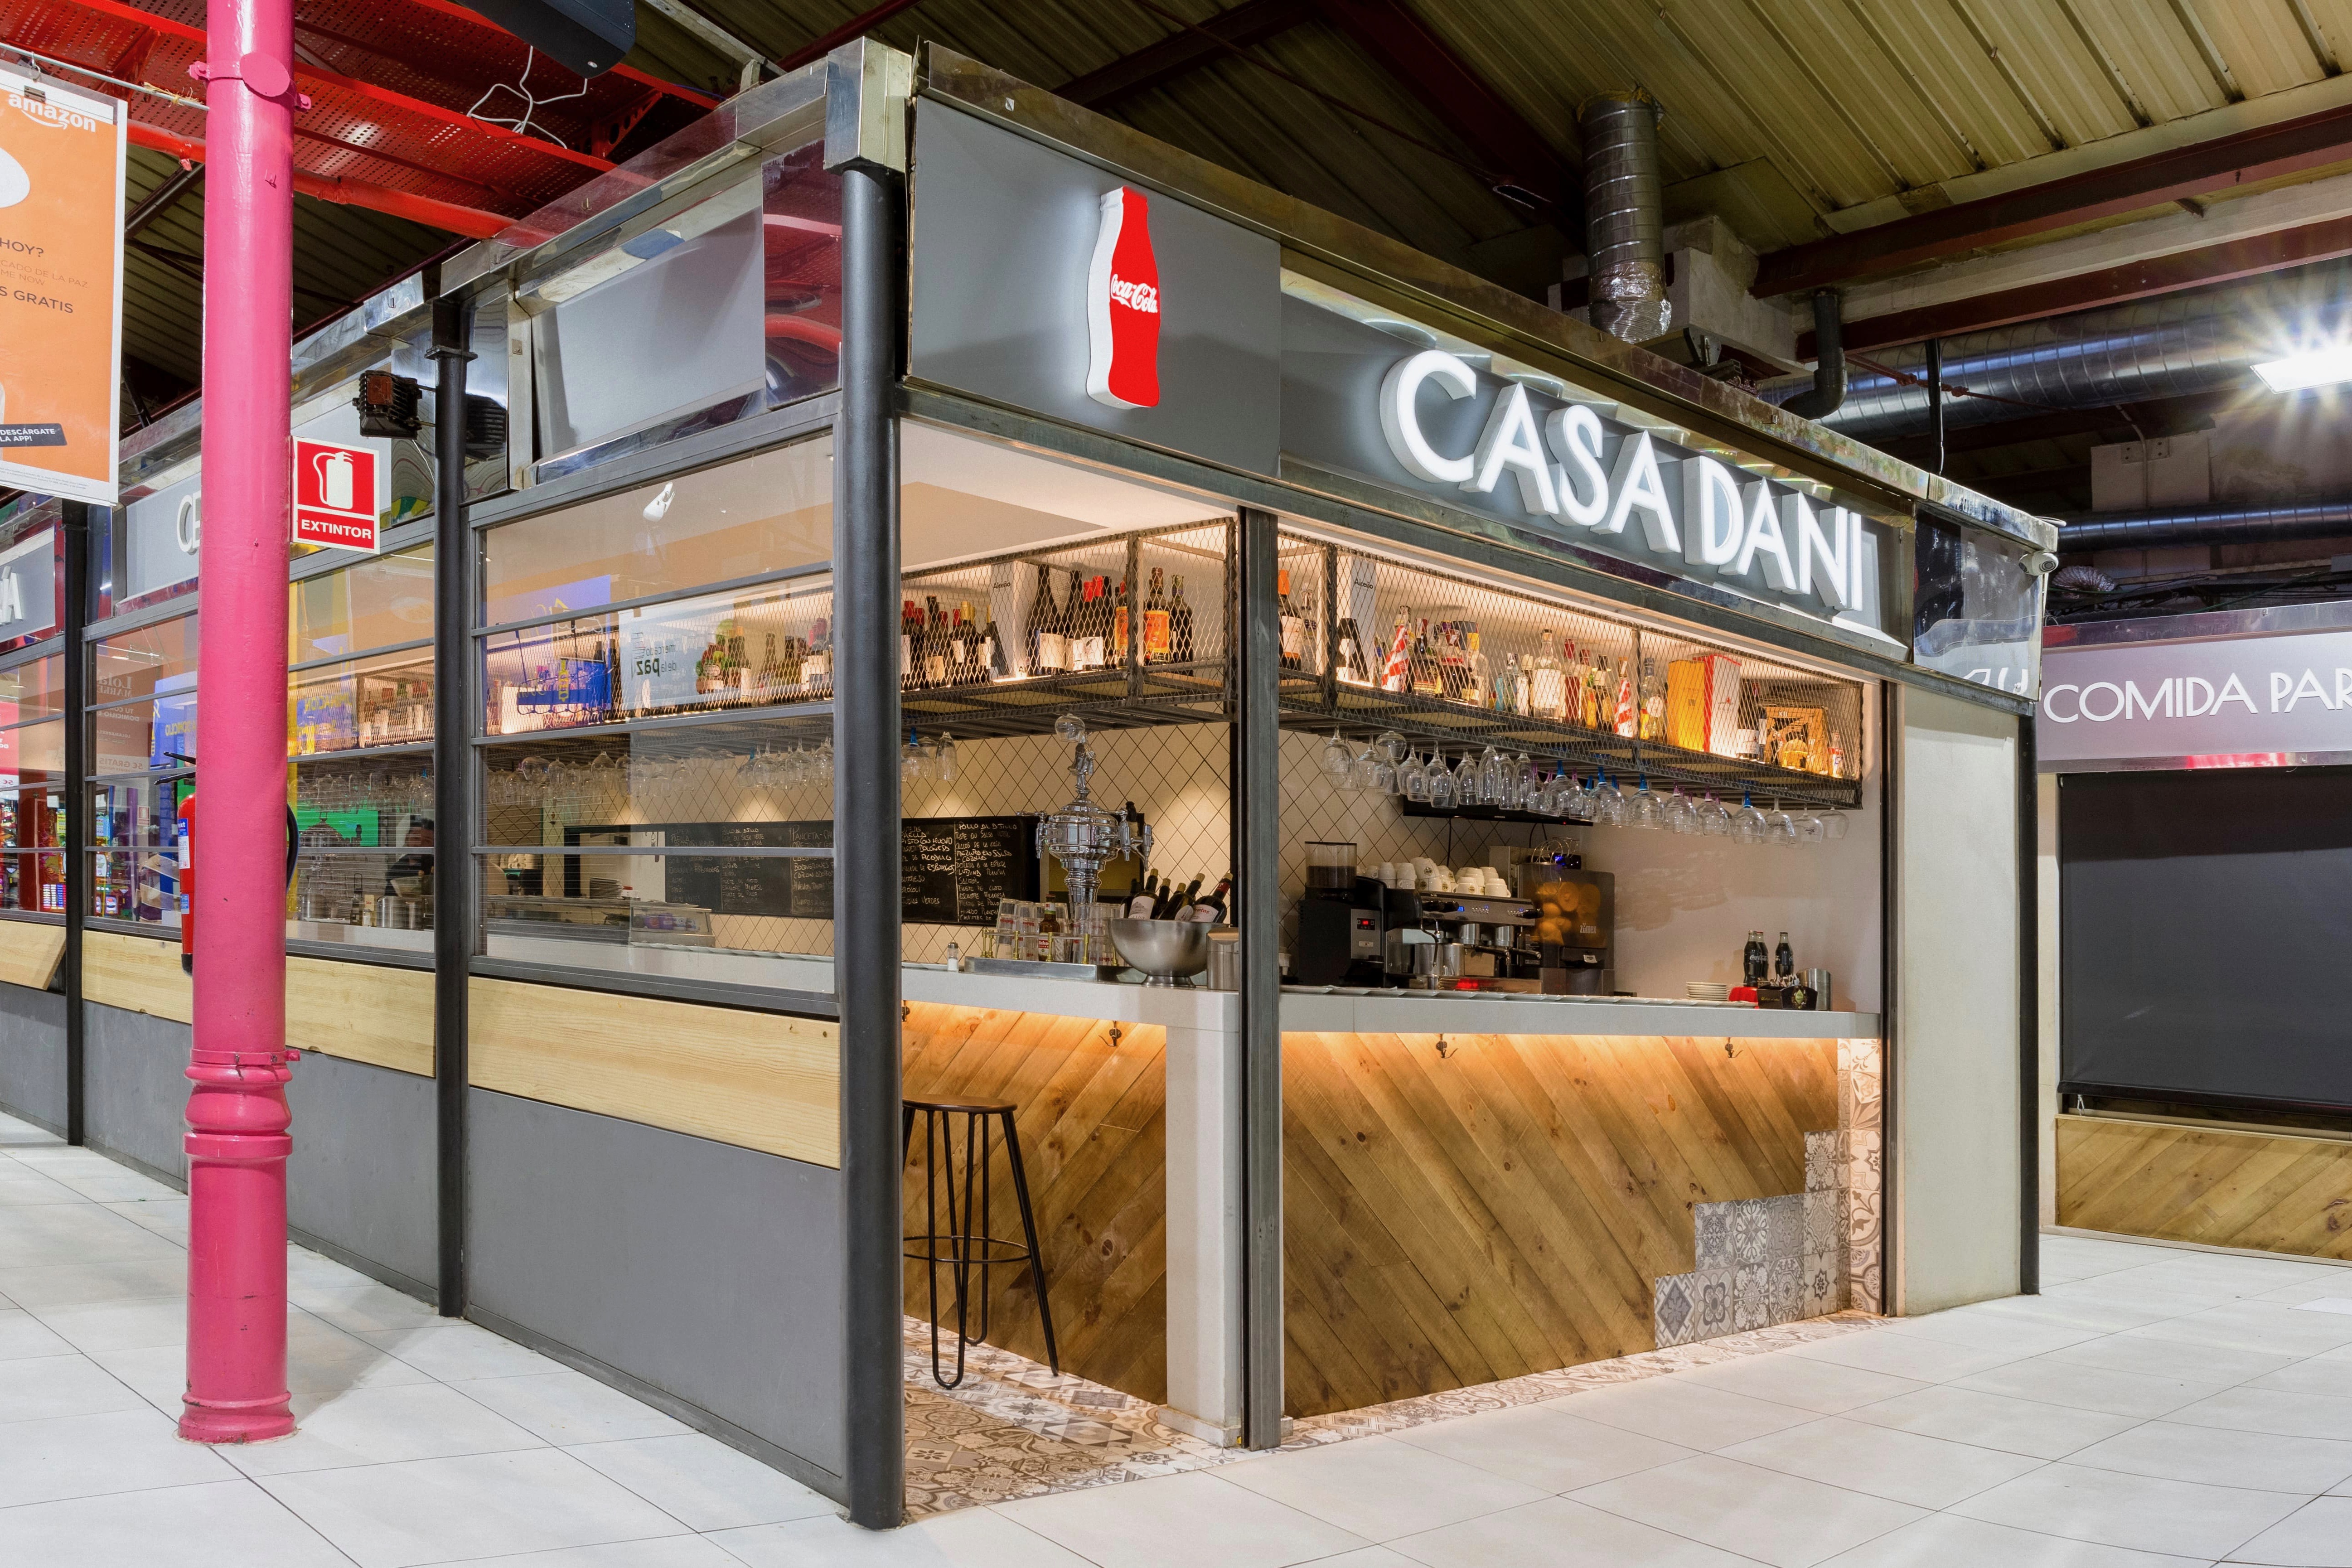 La Mia Casa Group the 23 best places to eat & drink in madrid - madrid - the